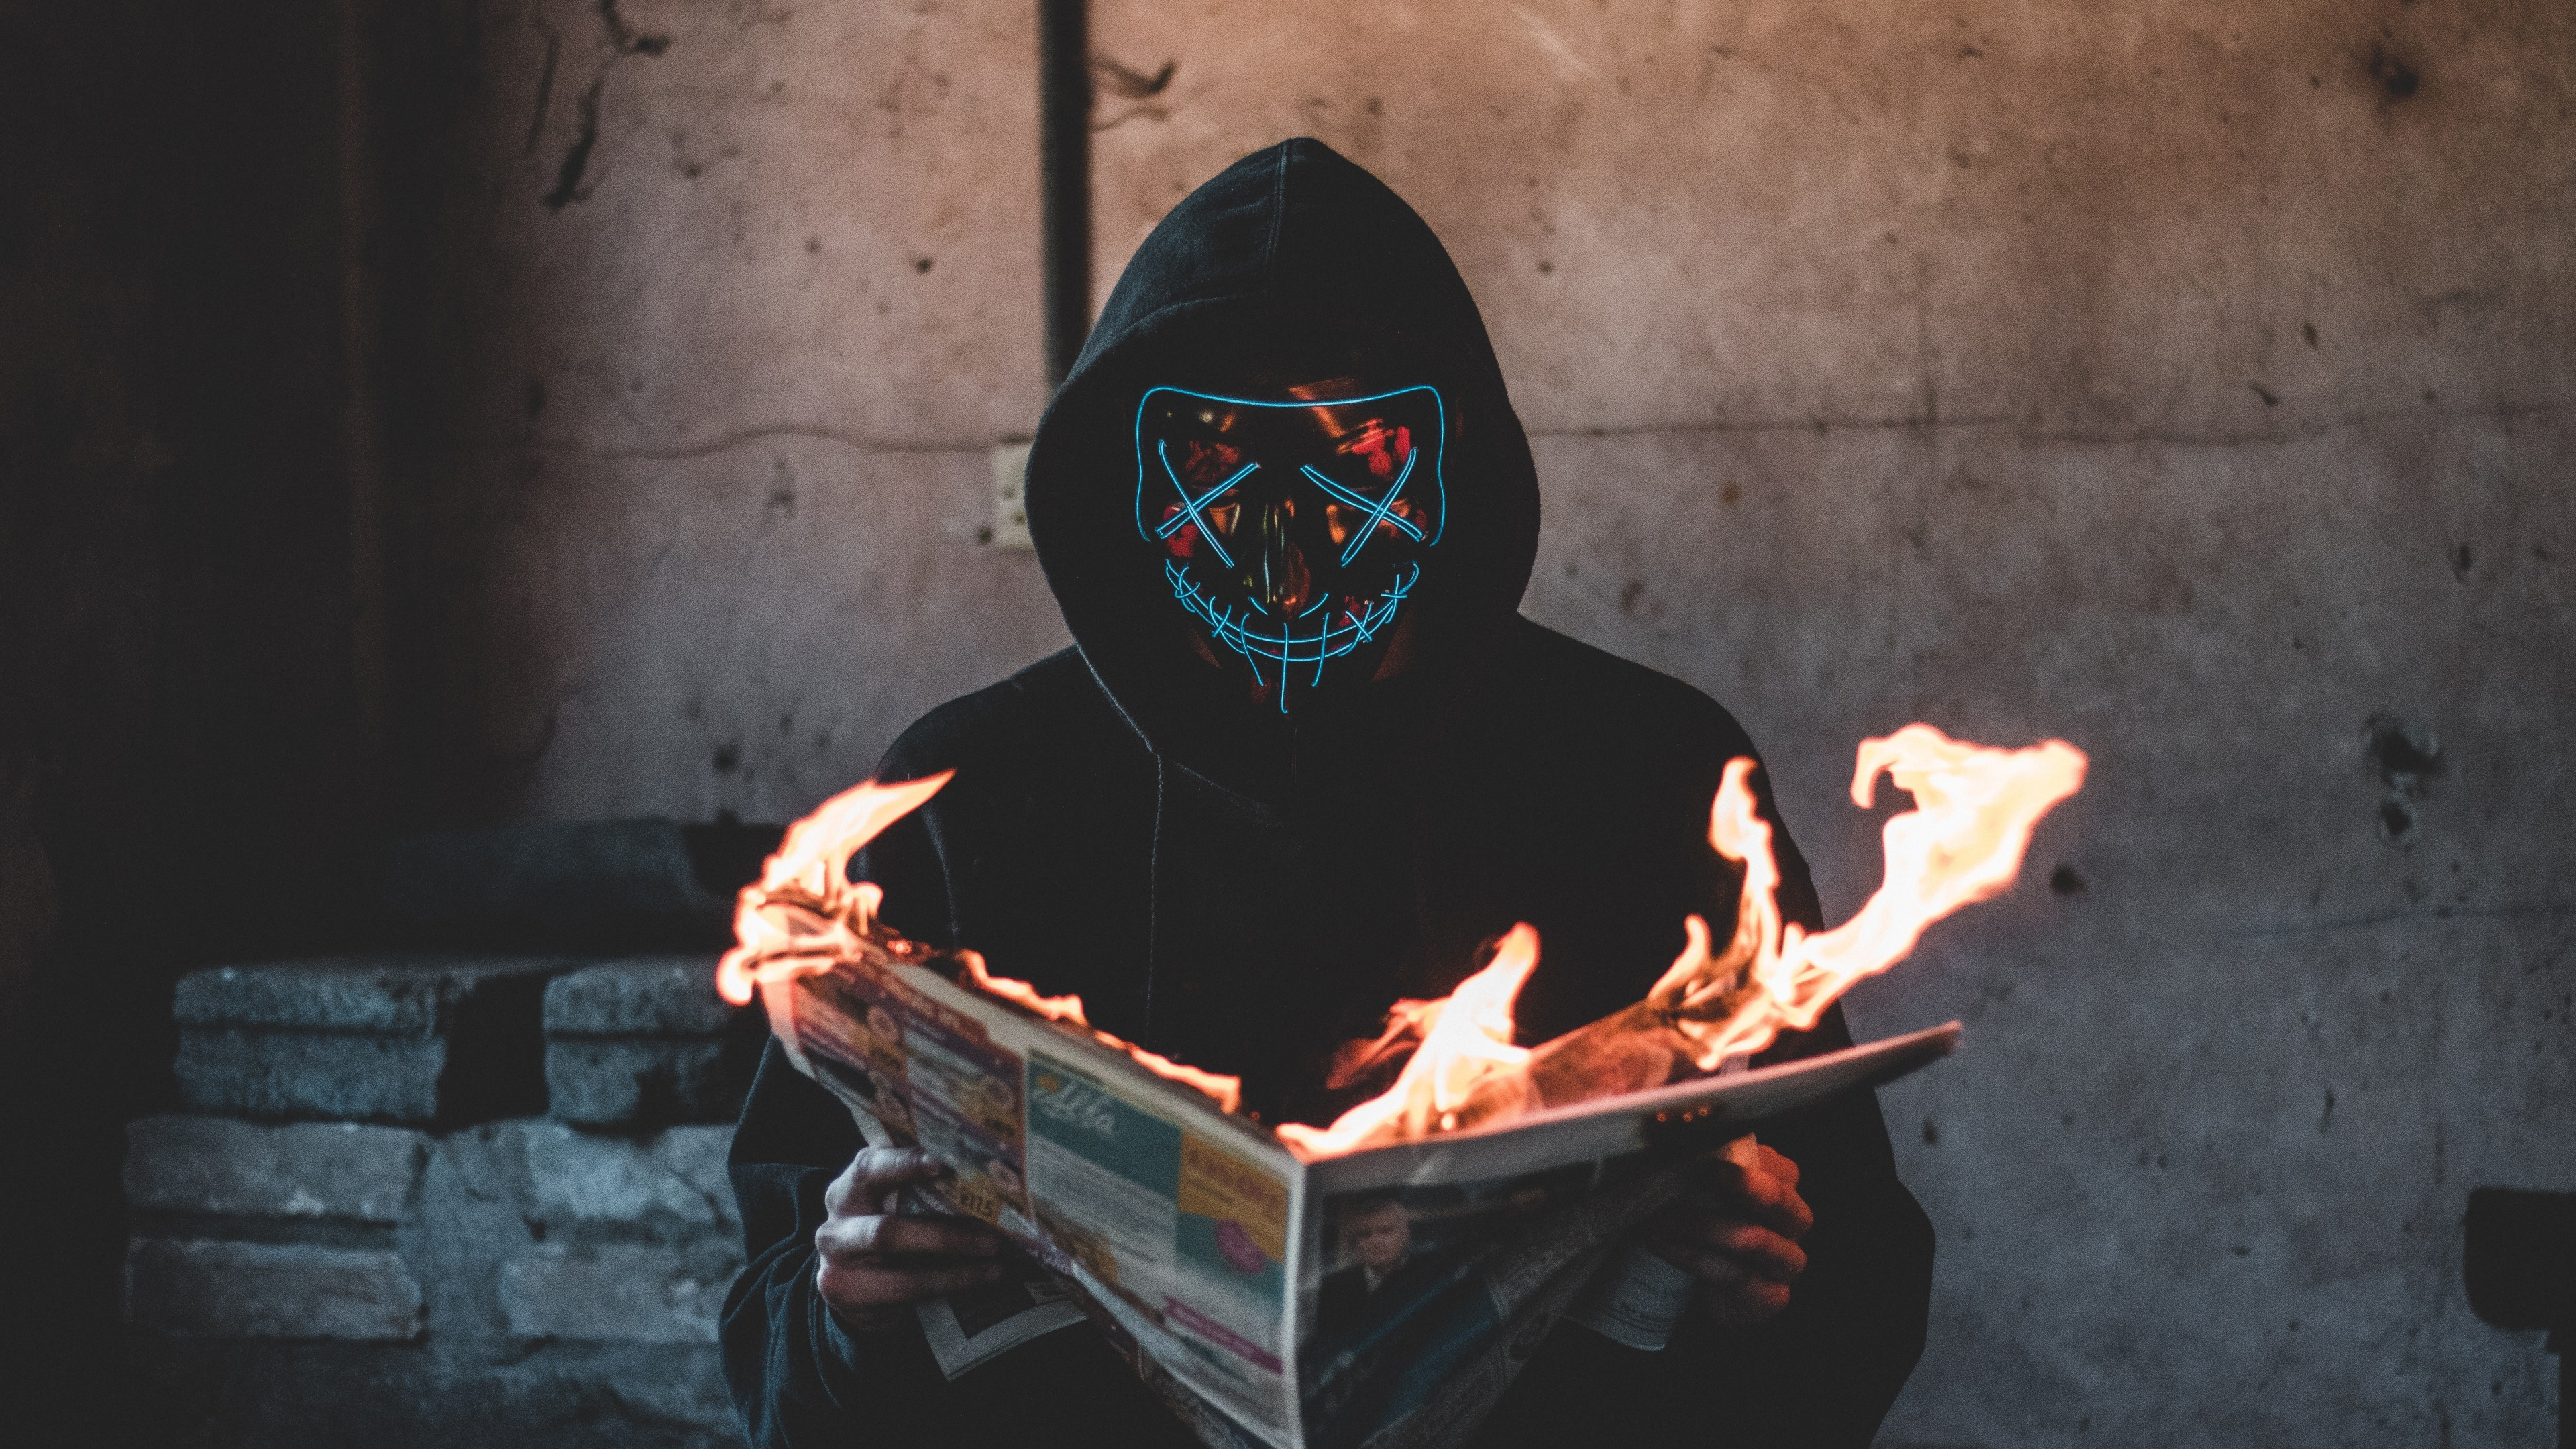 19 Mask Hd Wallpapers Backgrounds